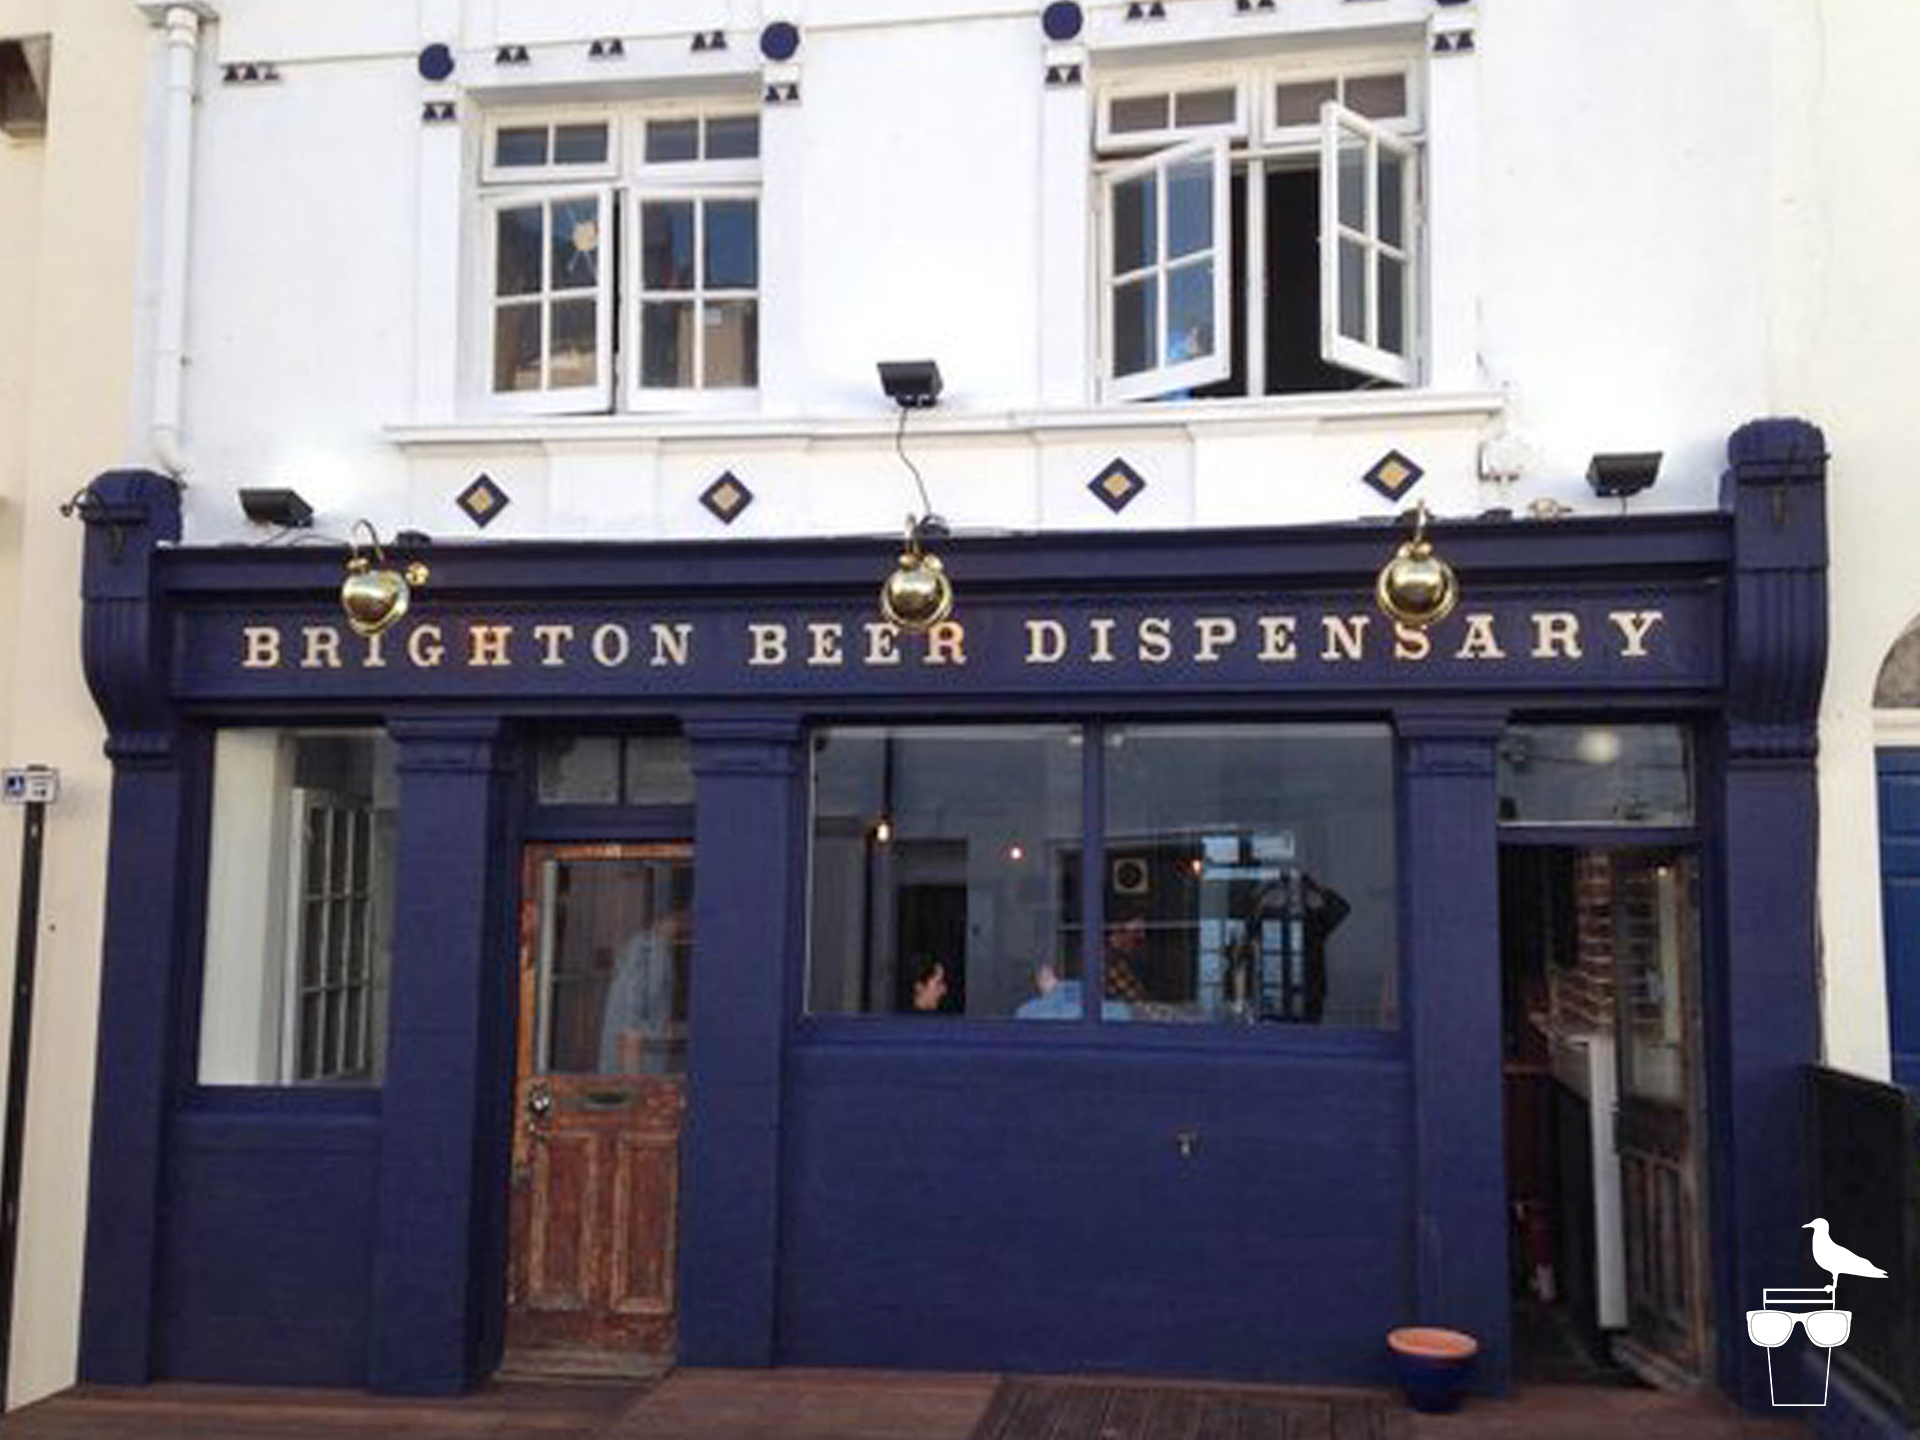 brighton beer dispensary outside front elevation